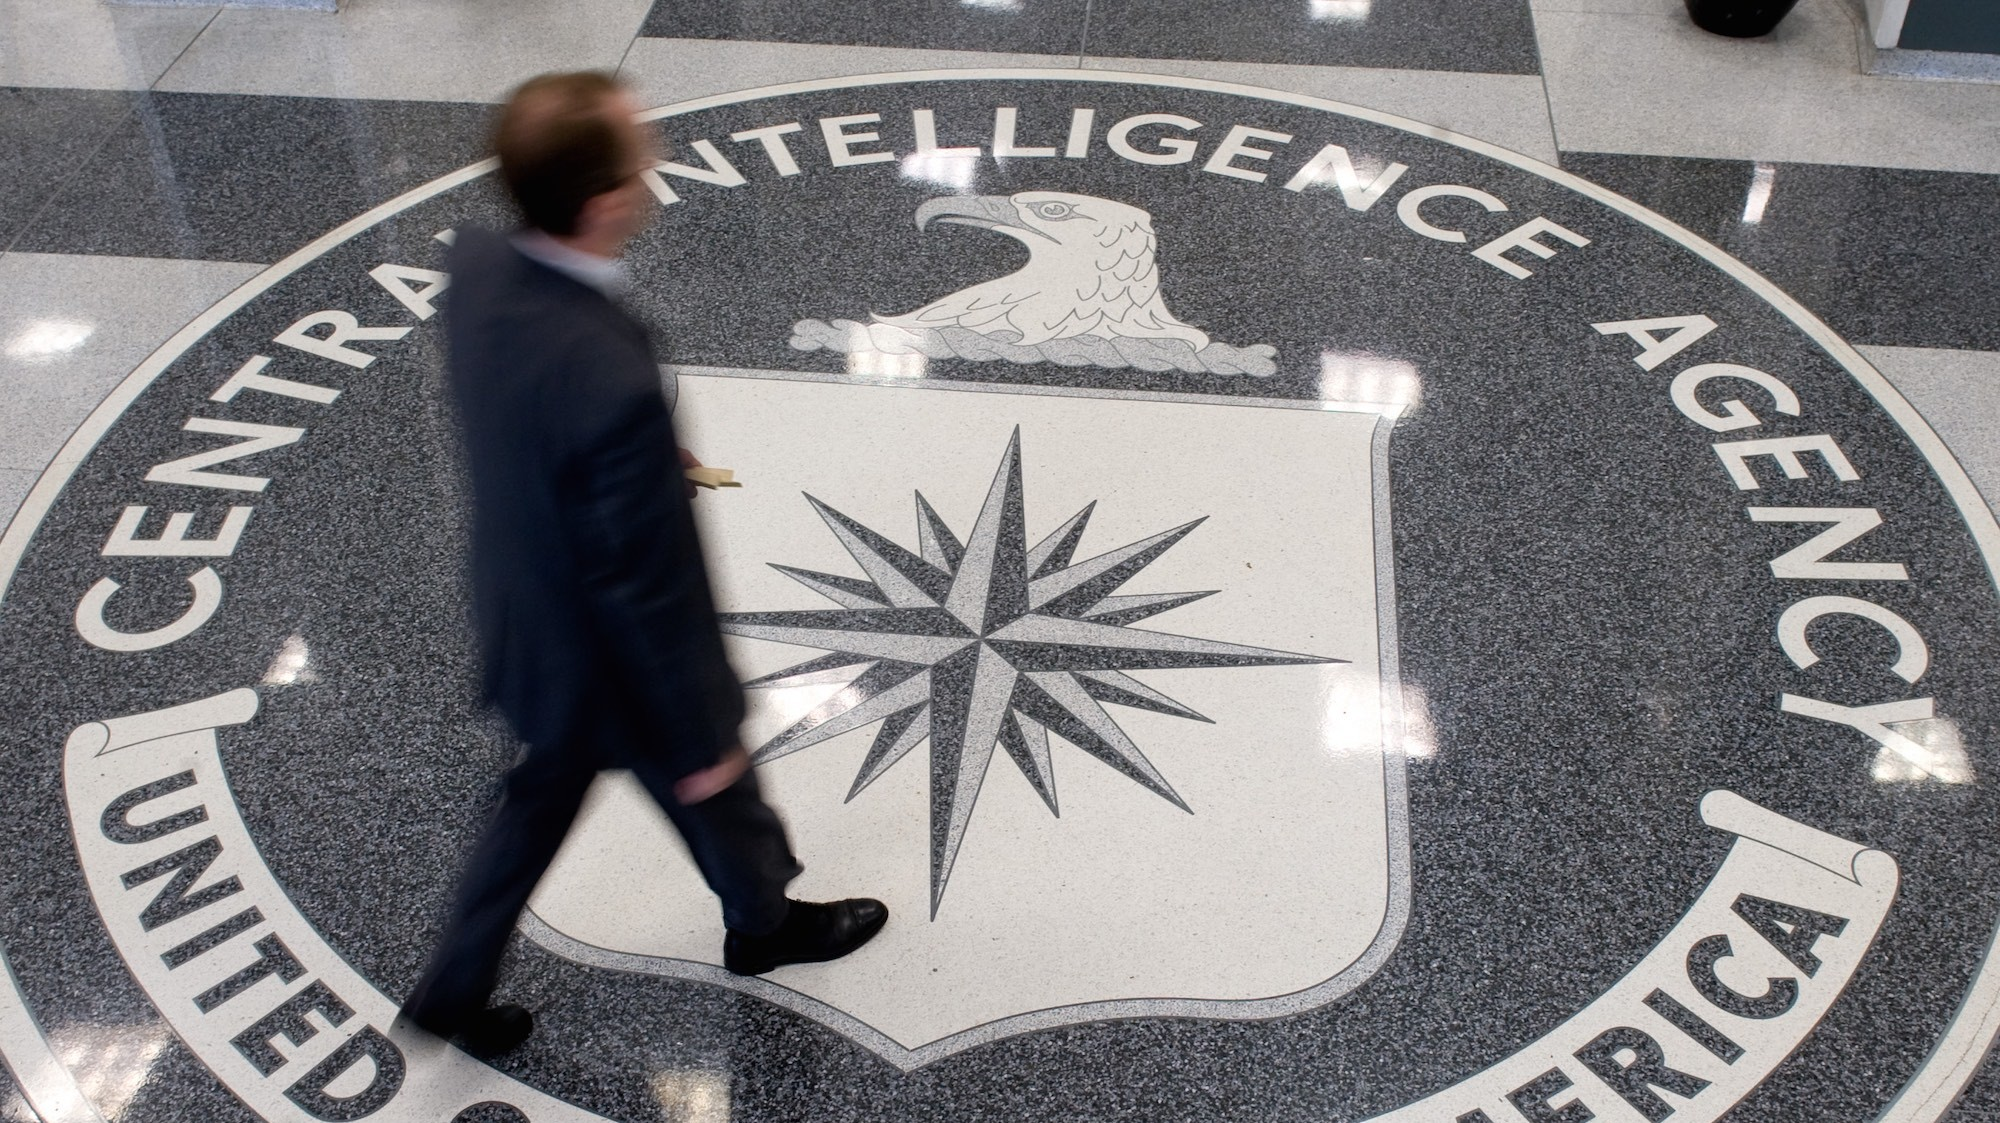 The CIA Illegally Let the Wrong People Do Intelligence Work, Declassified Report Finds